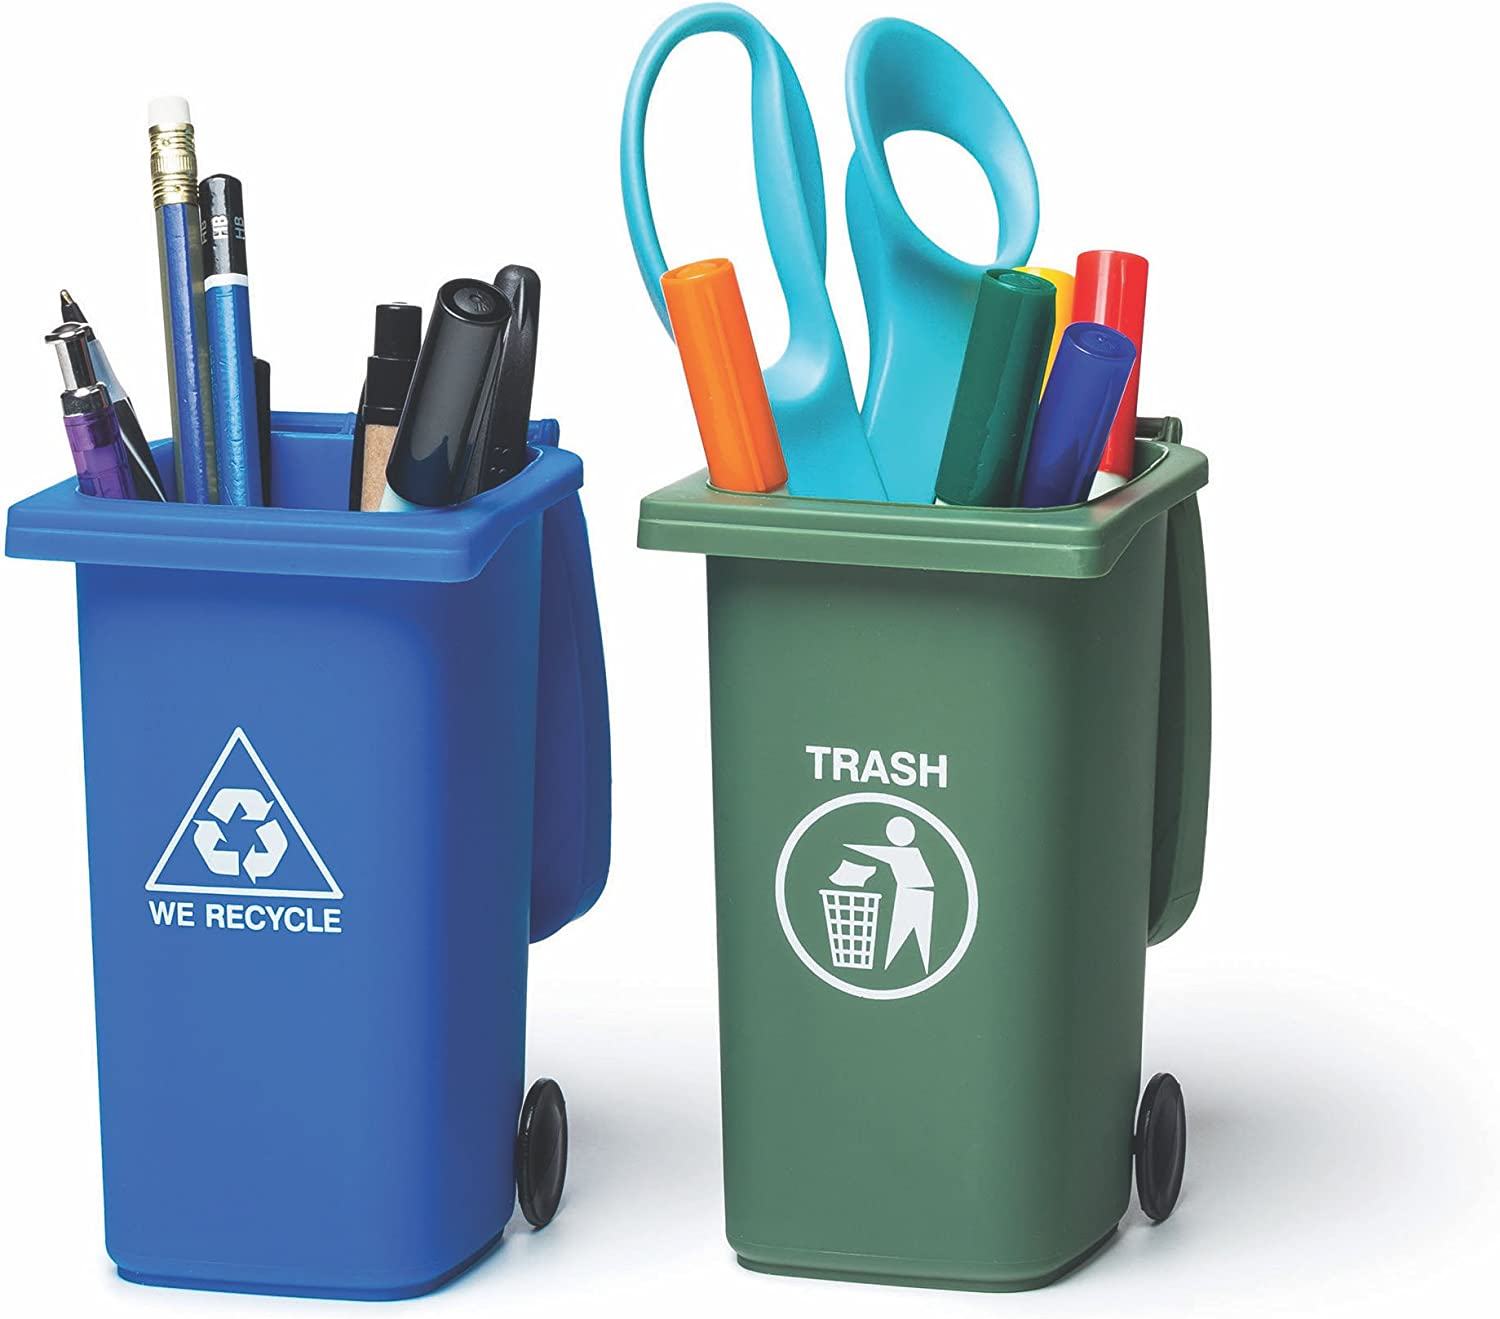 BigMouth Inc The Mini Curbside Trash and Recycle Can Set, 5-inch Tall Desktop Organizer, Pencil Holder for Desk